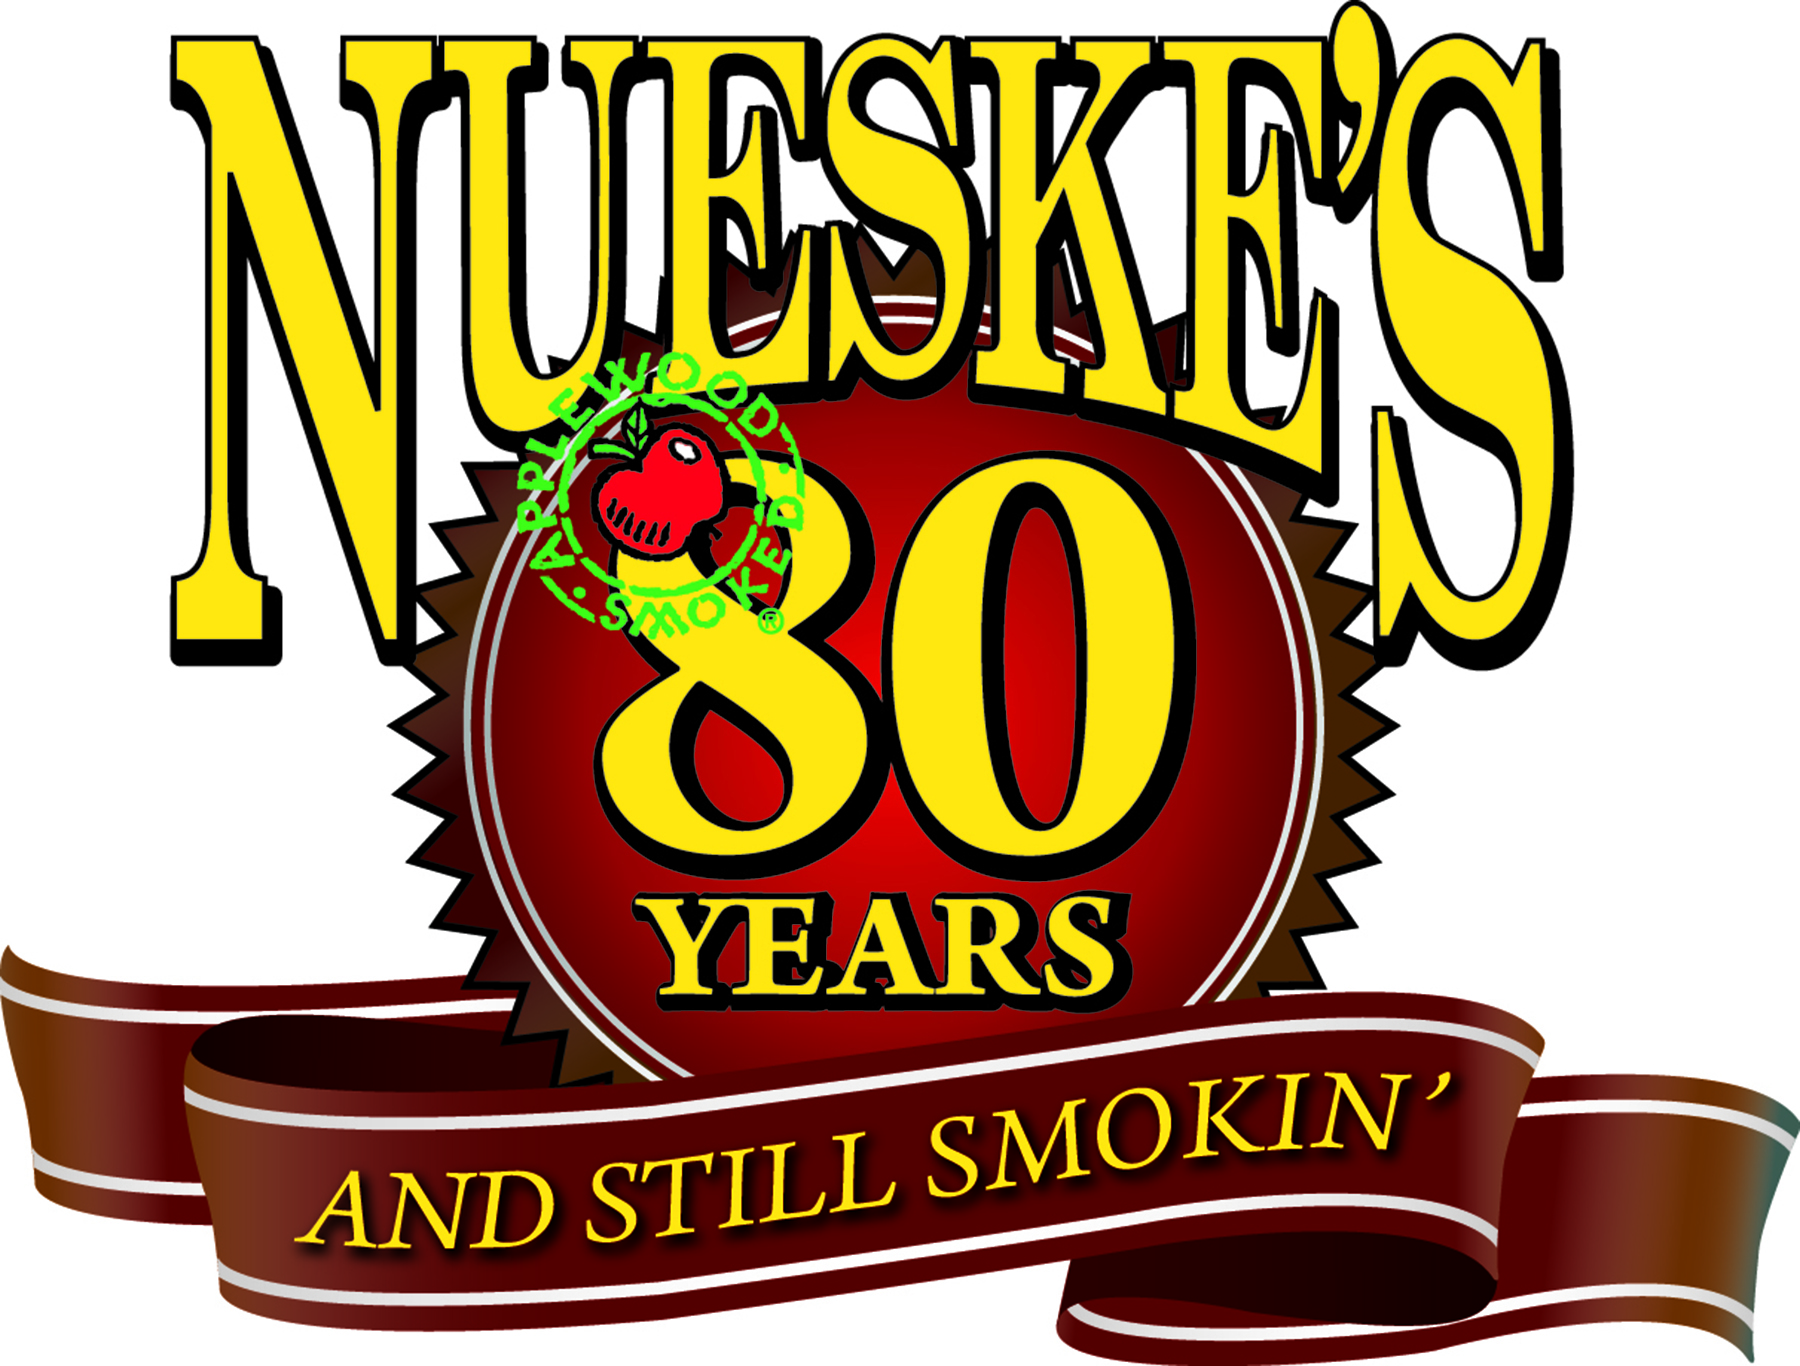 Nueske's Coupons & Promo Codes. 9 verified offers for December, Coupon Codes / Food & Grocery / Food / Nueske's Coupon. Add to Your Favorites. from 22 users. We have 9 Nueske's coupon codes for you to choose from including 9 sales. Most popular 90%(22).